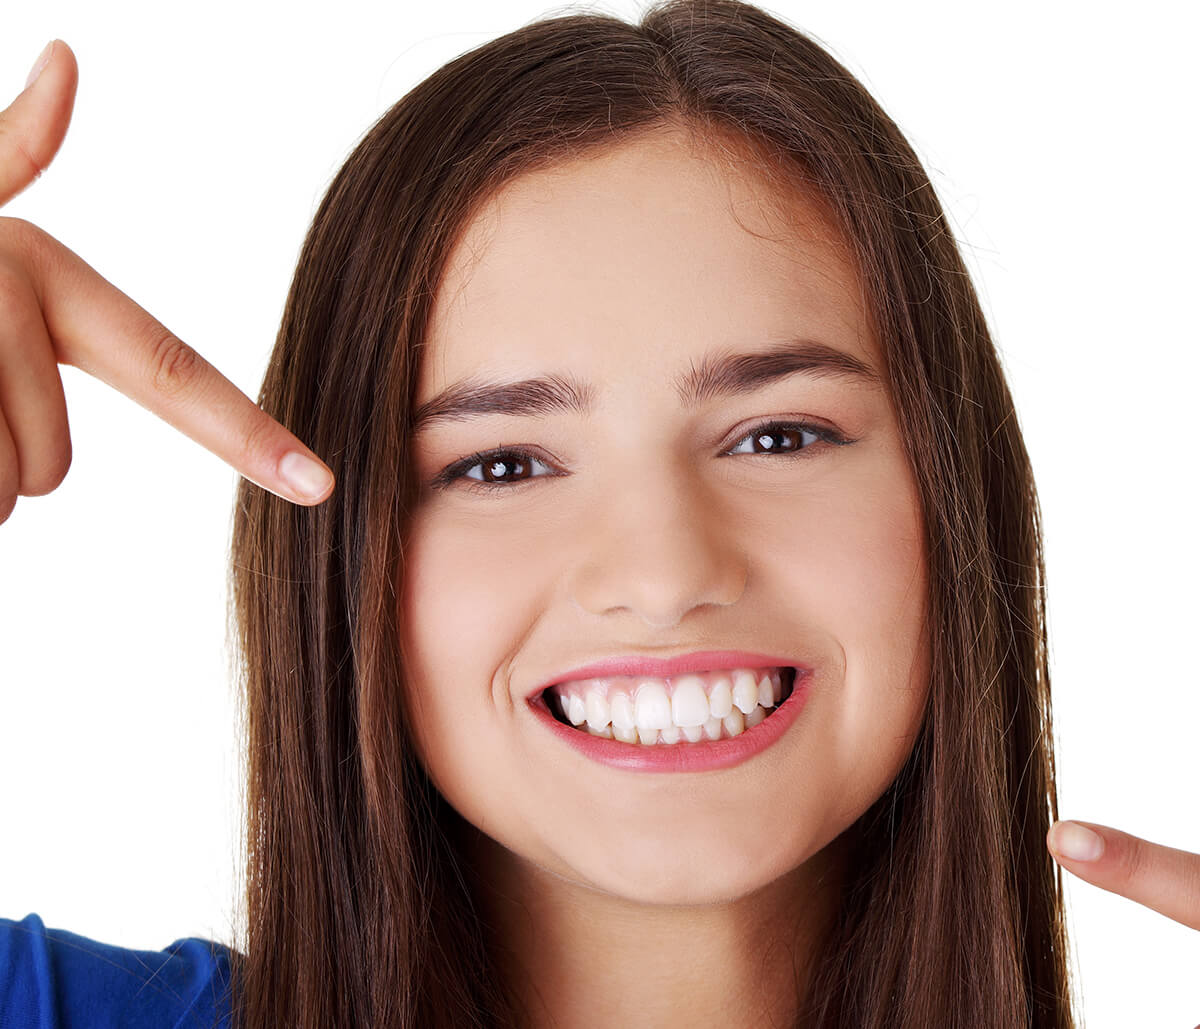 Dentist for Wisdom Tooth Extraction Triad Dentistry in Greensboro Area